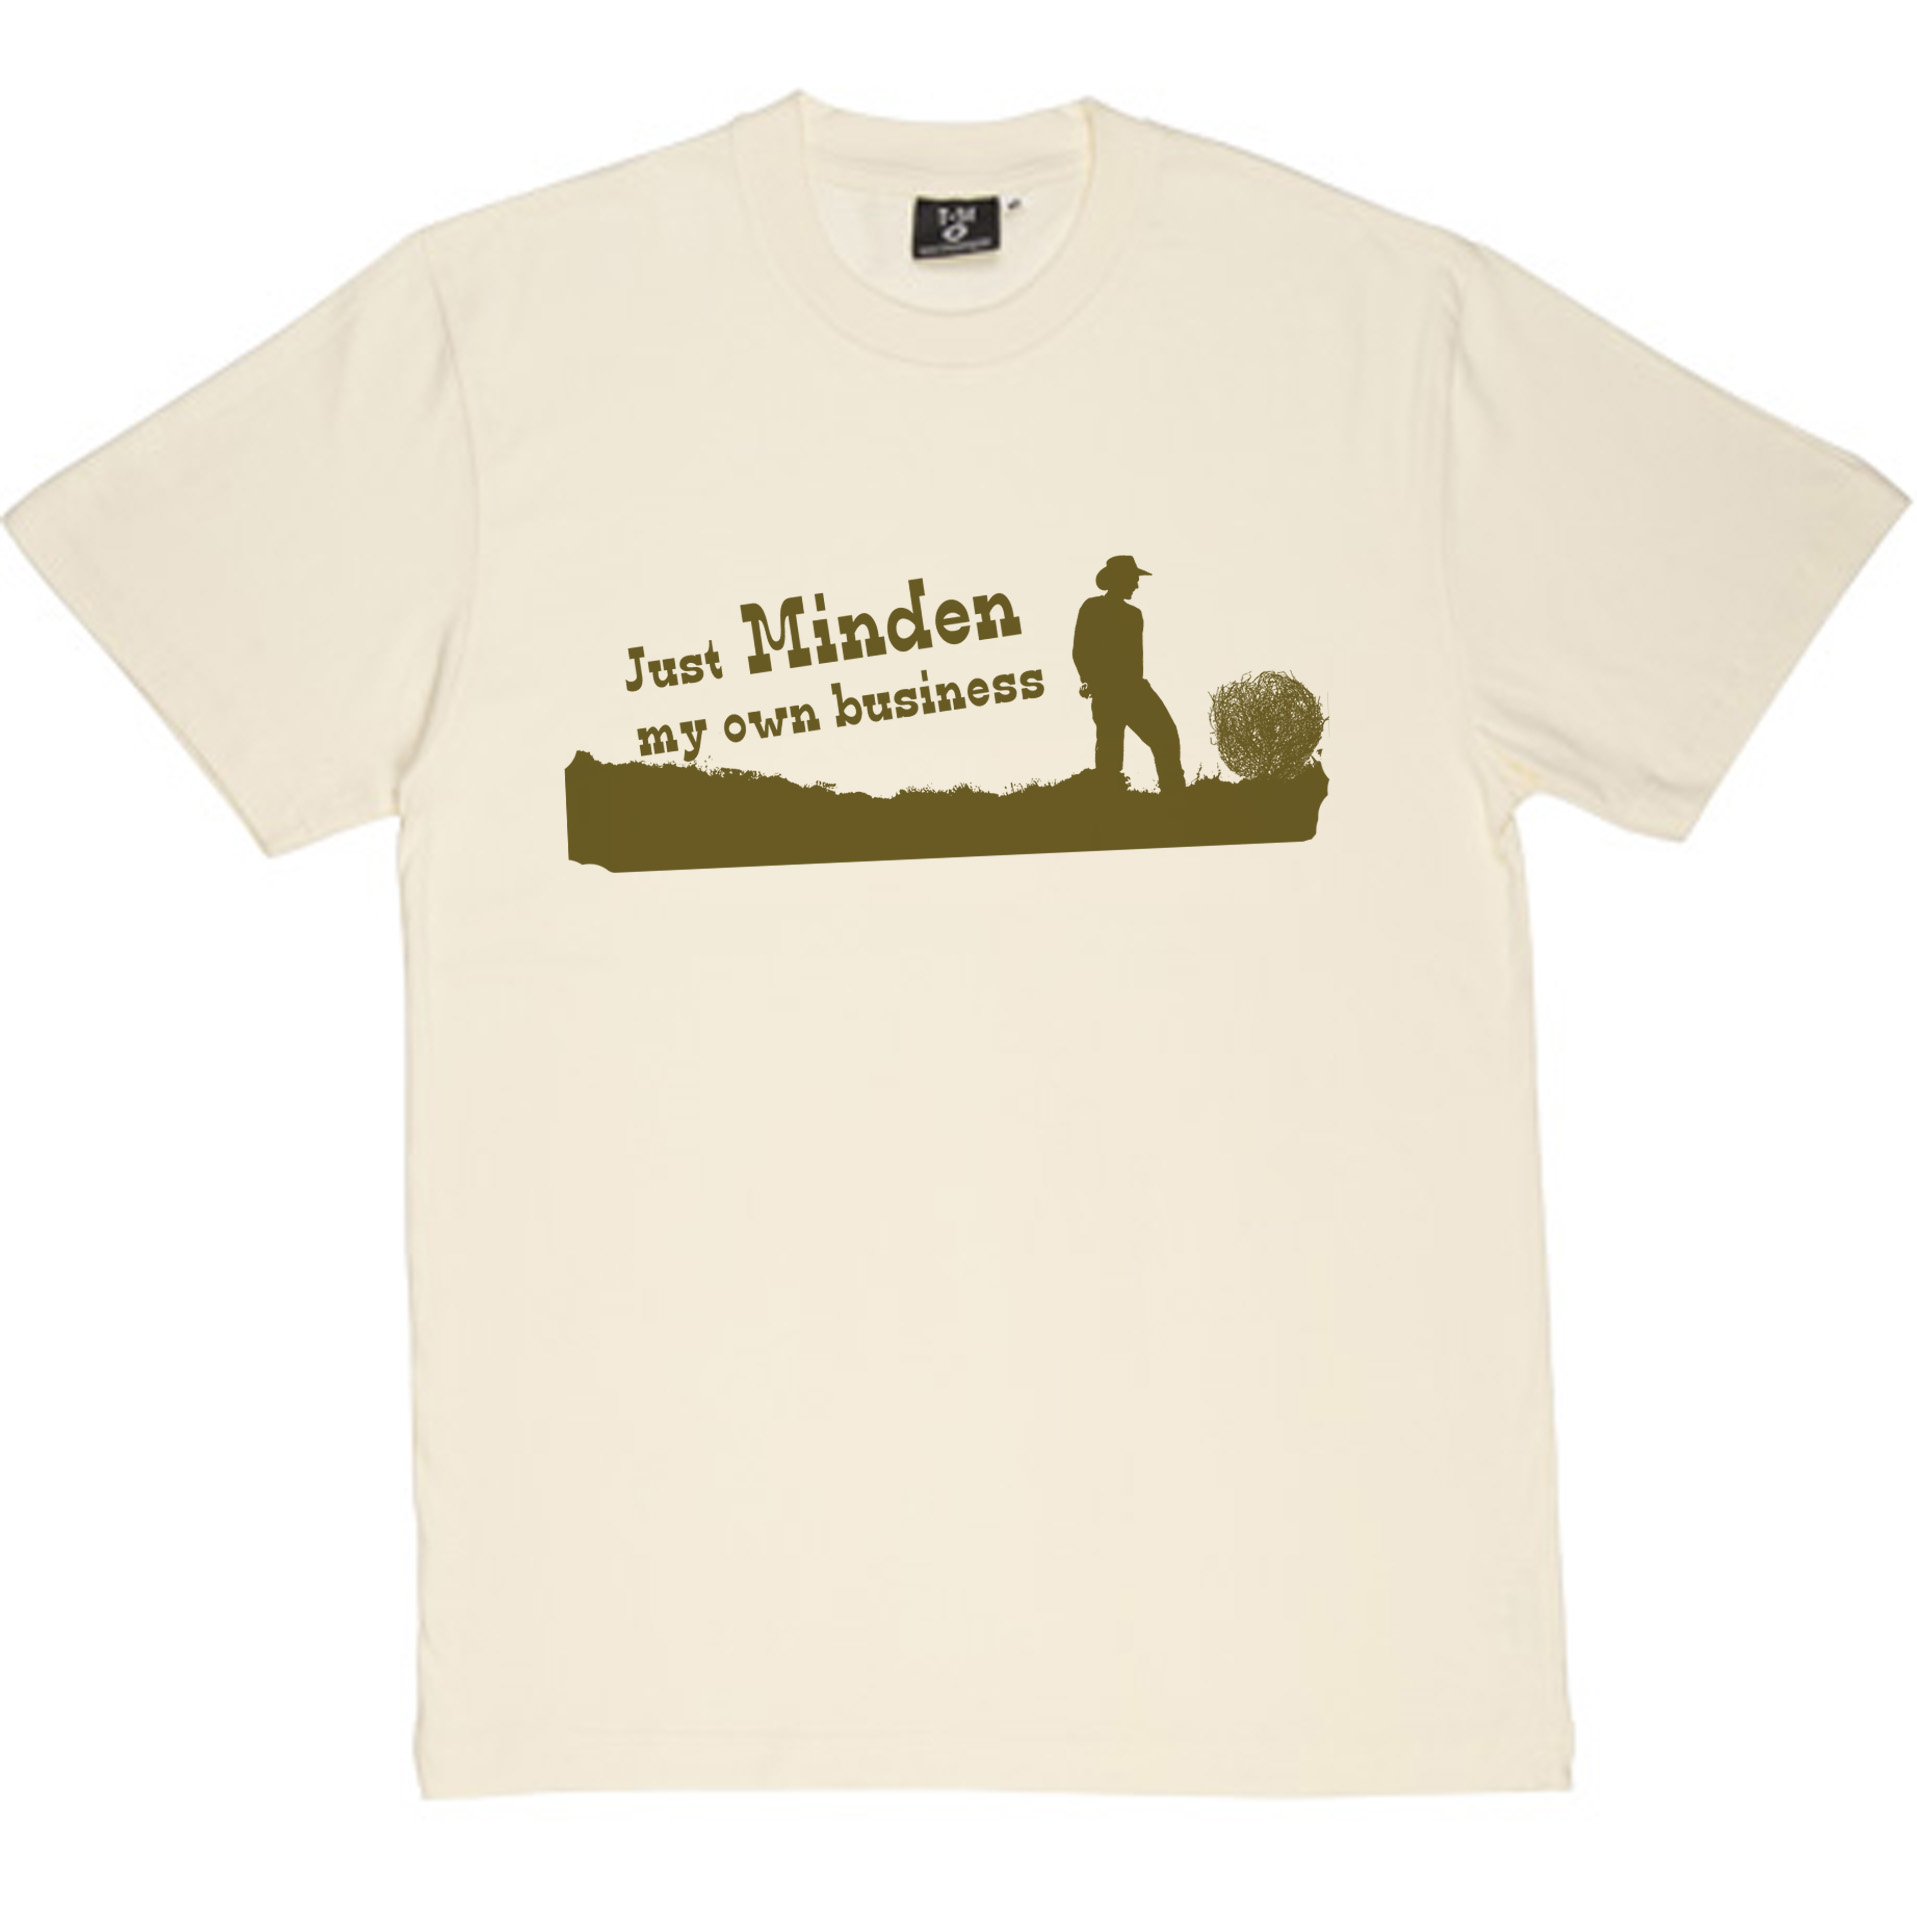 Just minden my own business a small town t shirt design for Print my own t shirt design